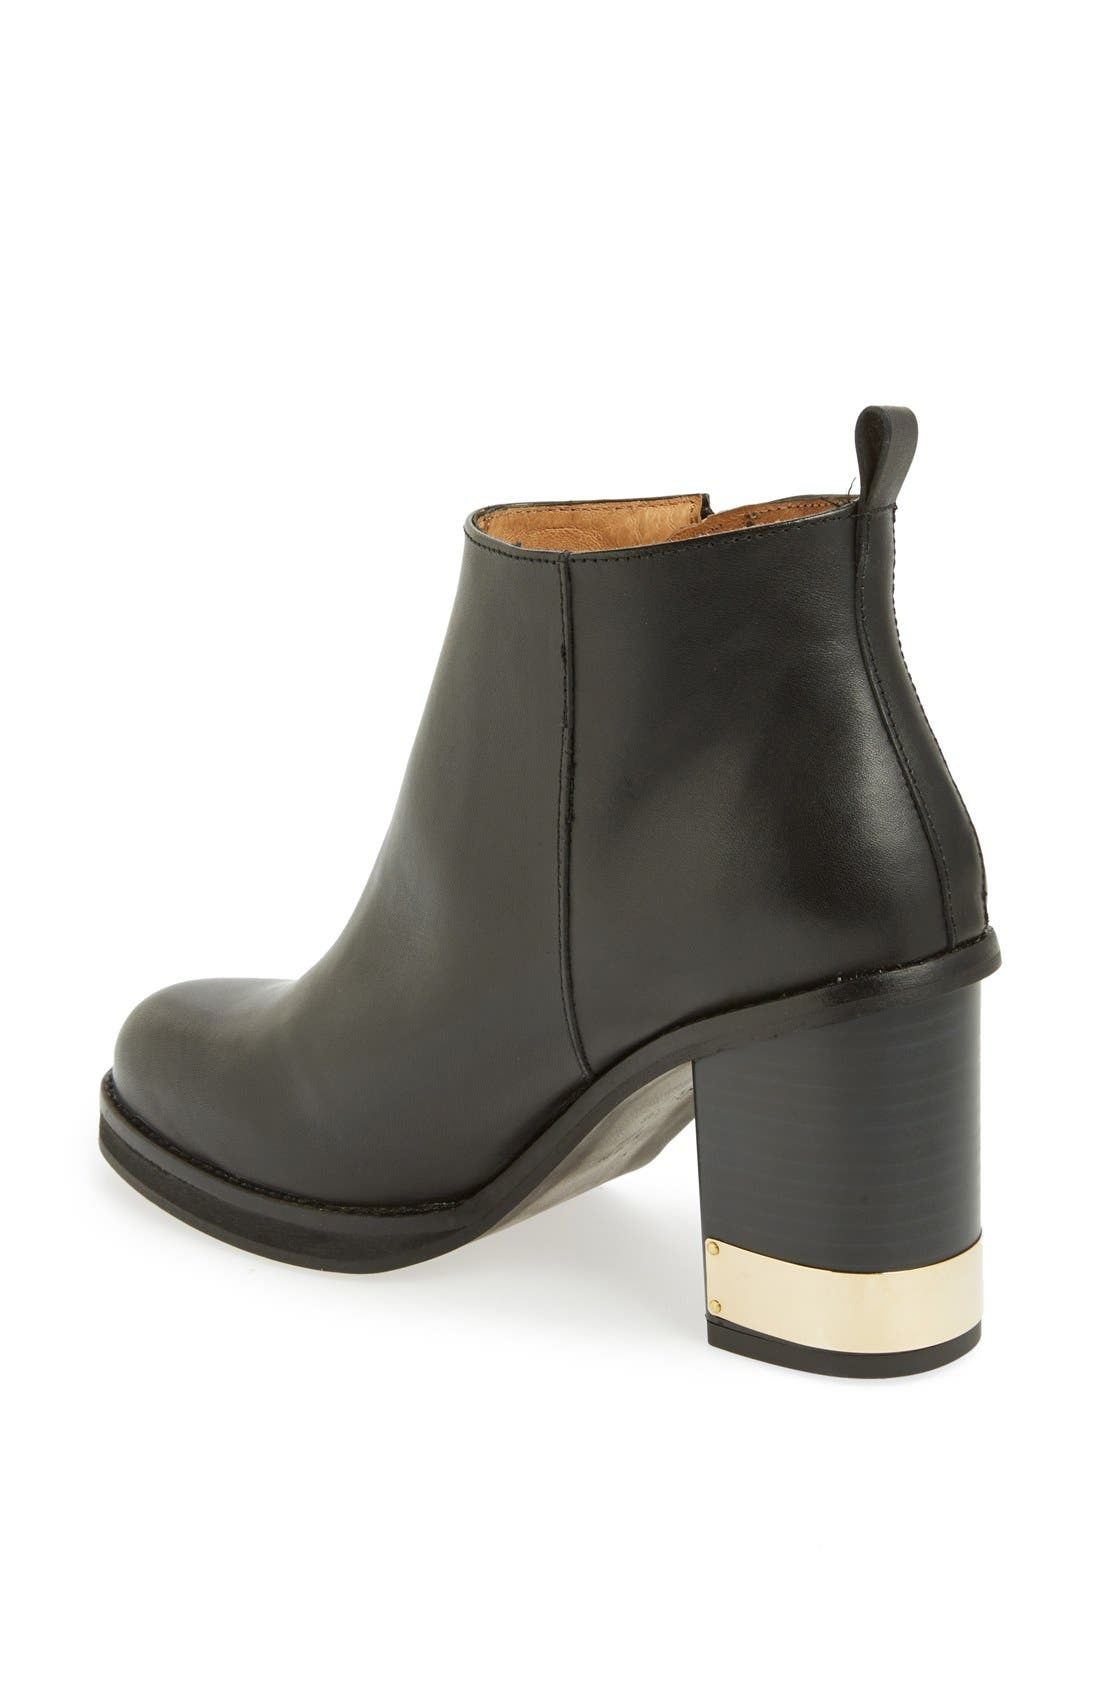 TOPSHOP,                             'All Ours' Ankle Boot,                             Alternate thumbnail 3, color,                             001